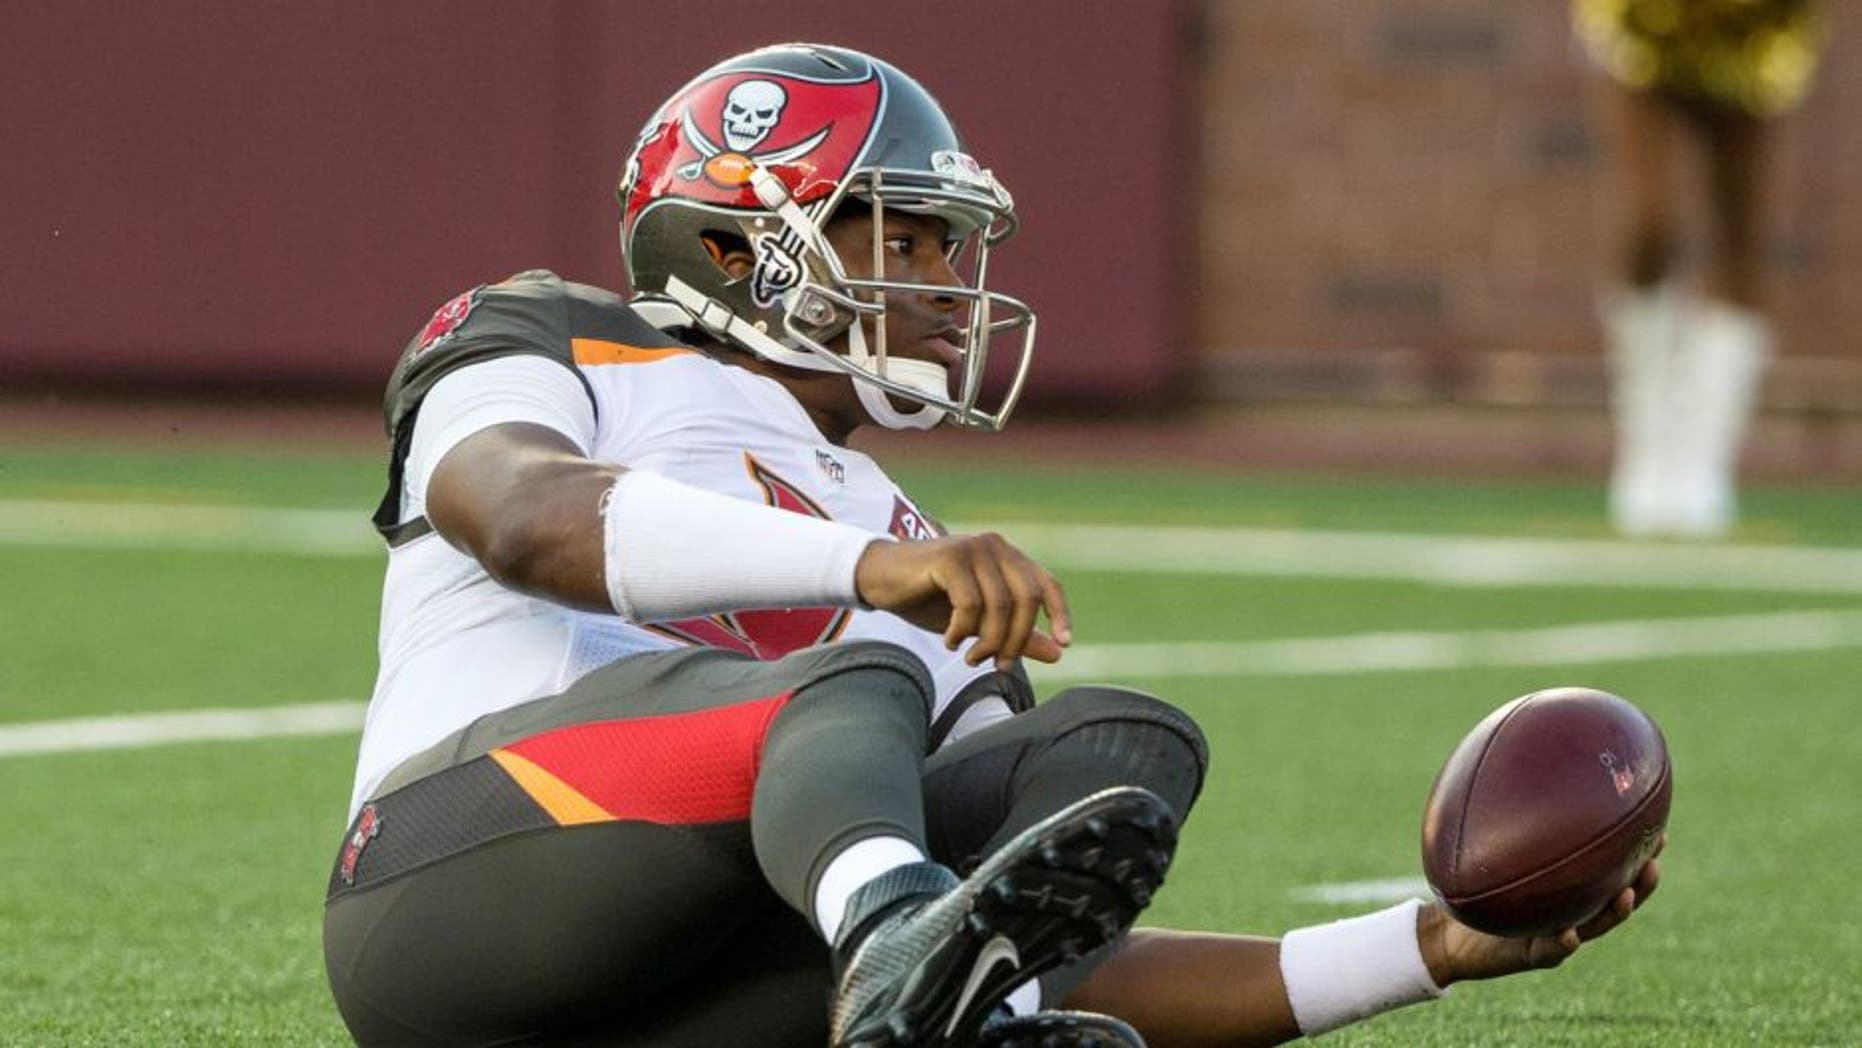 Aug 15, 2015; Minneapolis, MN, USA; Tampa Bay Buccaneers quarterback Jameis Winston (3) reacts after a sack during the first quarter in a preseason NFL football game against the Minnesota Vikings at TCF Bank Stadium. Mandatory Credit: Brace Hemmelgarn-USA TODAY Sports